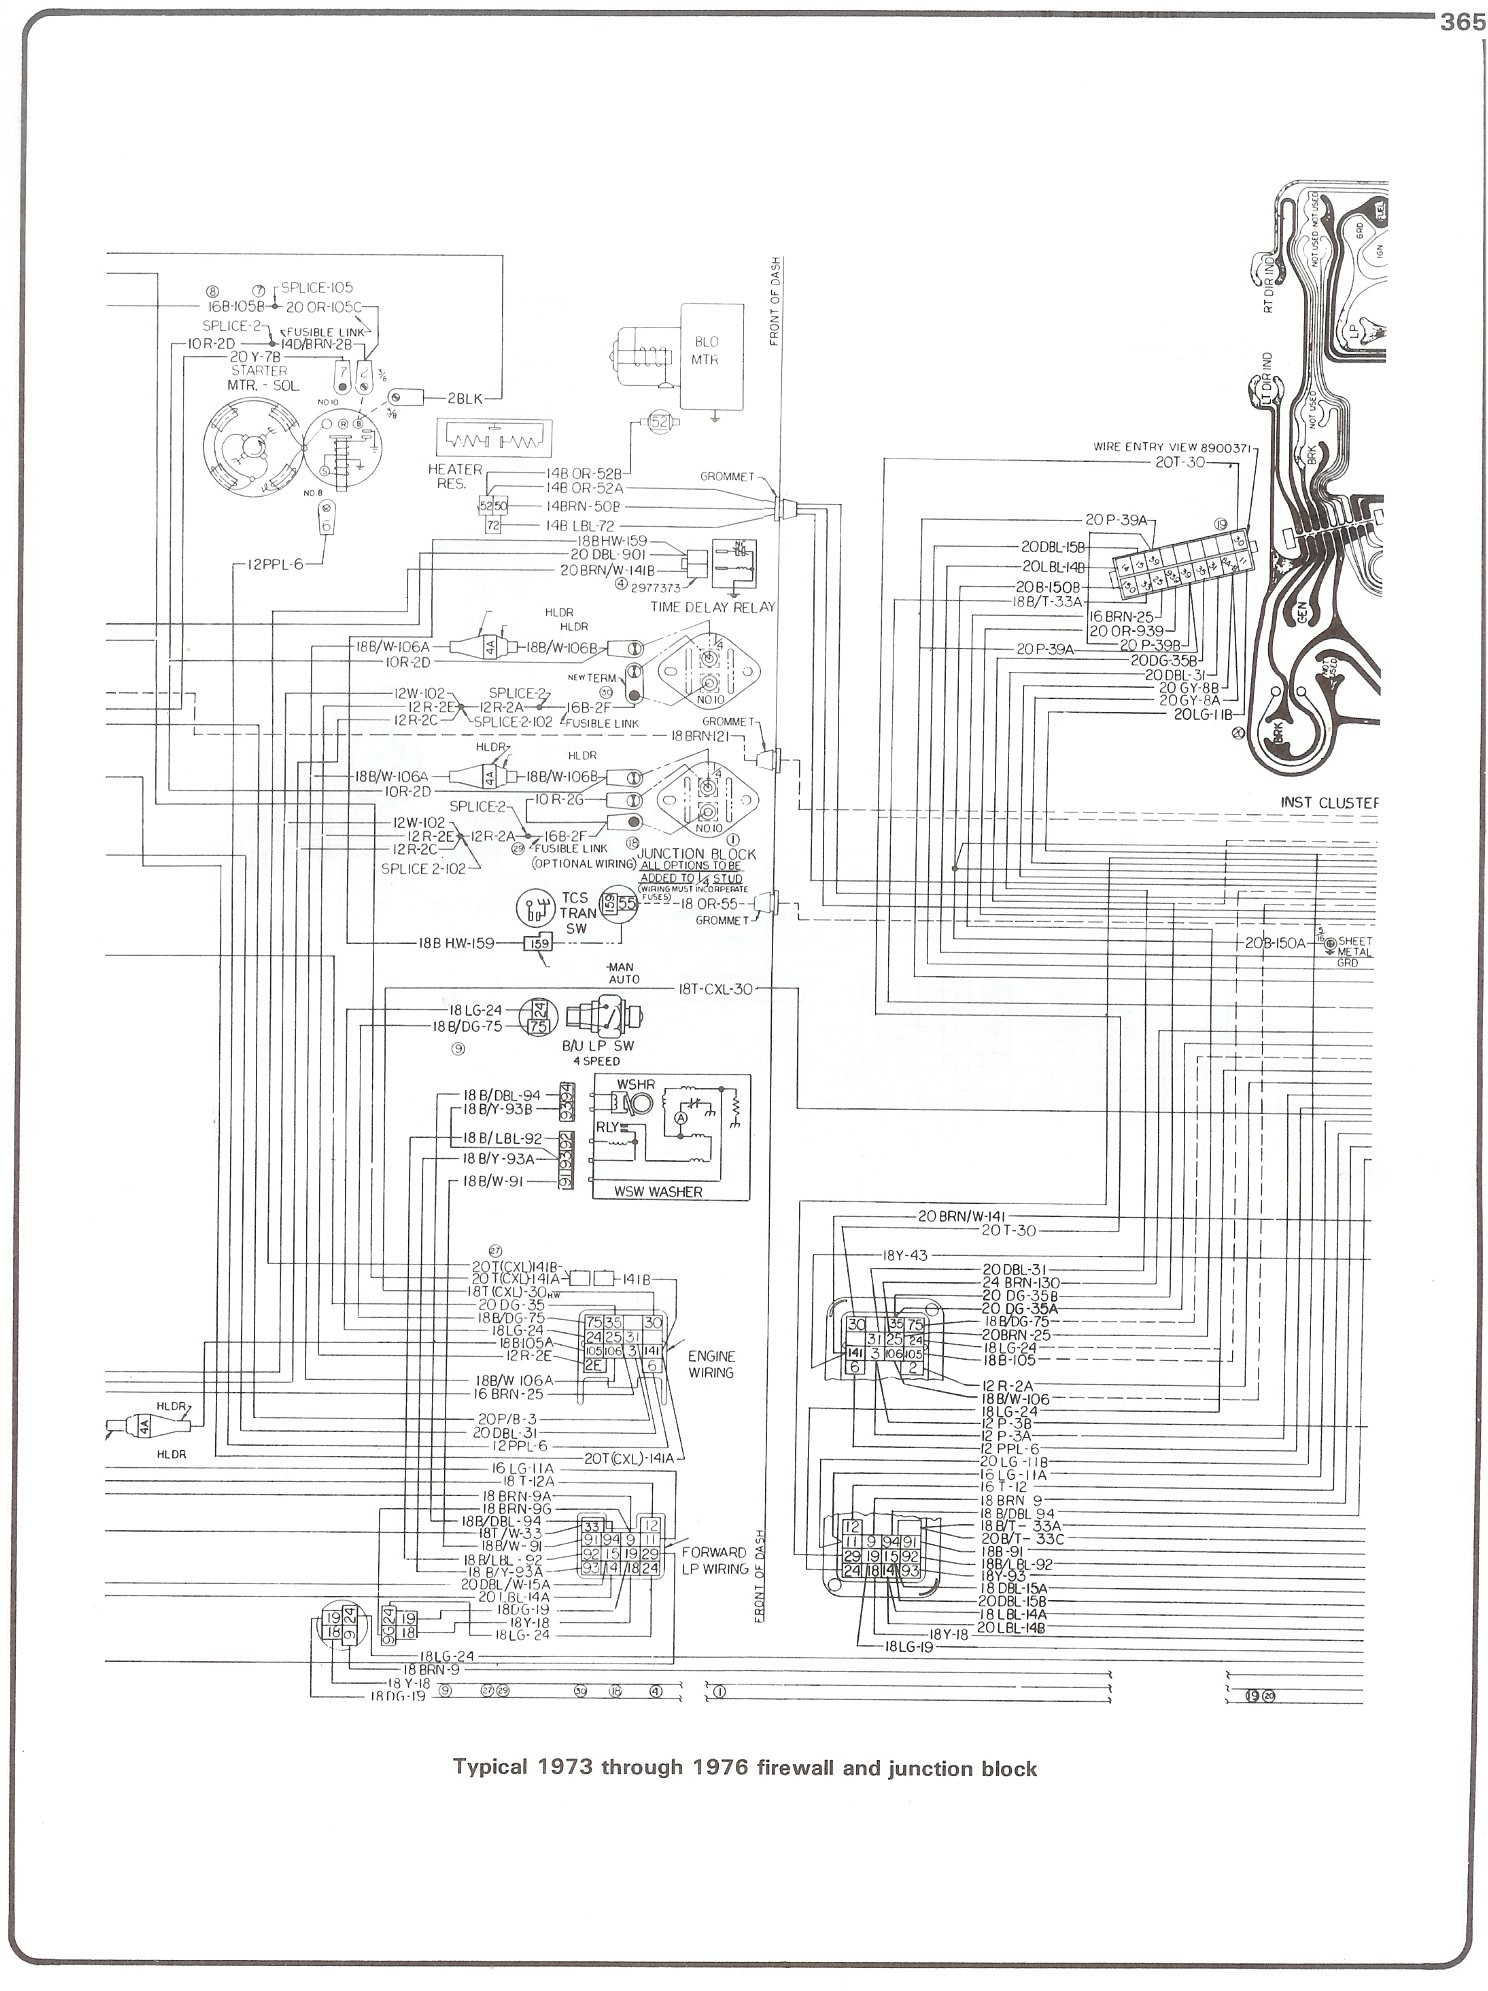 Wiring Diagram For Predator 420cc Ohv